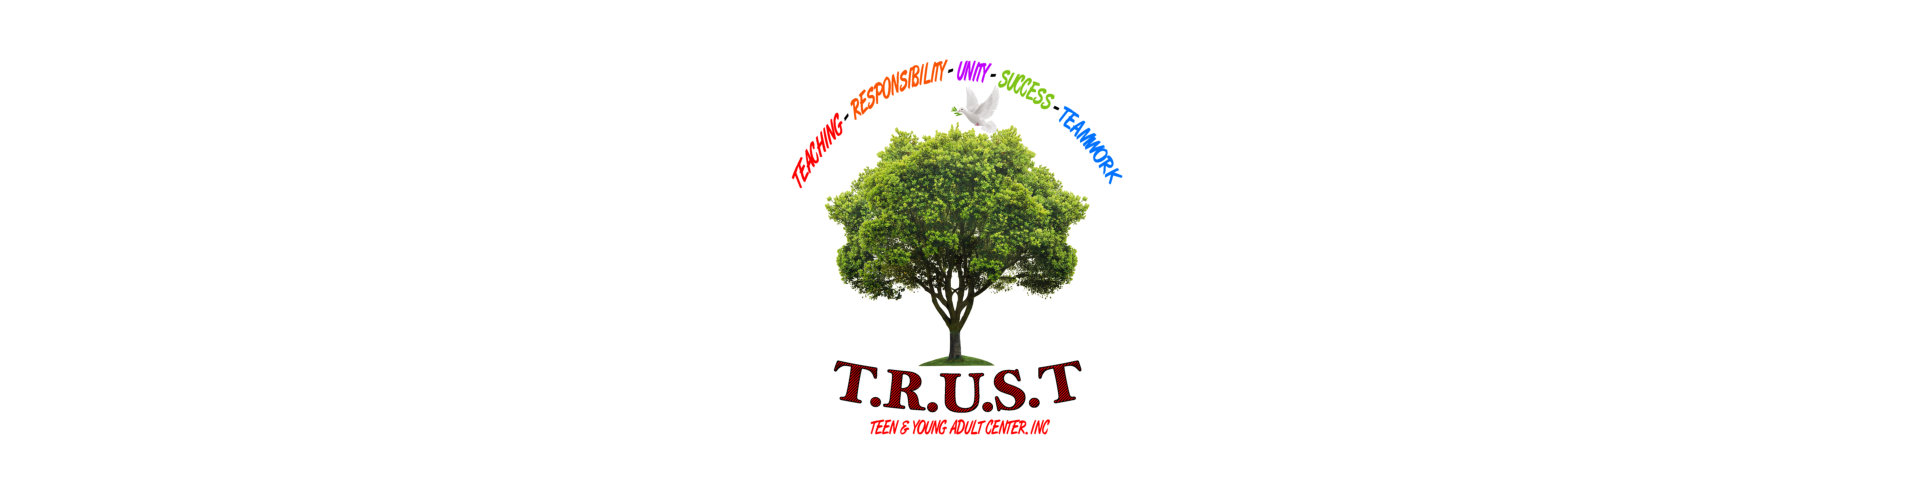 T.R.U.S.T. Teen & Young Adult Center Inc.